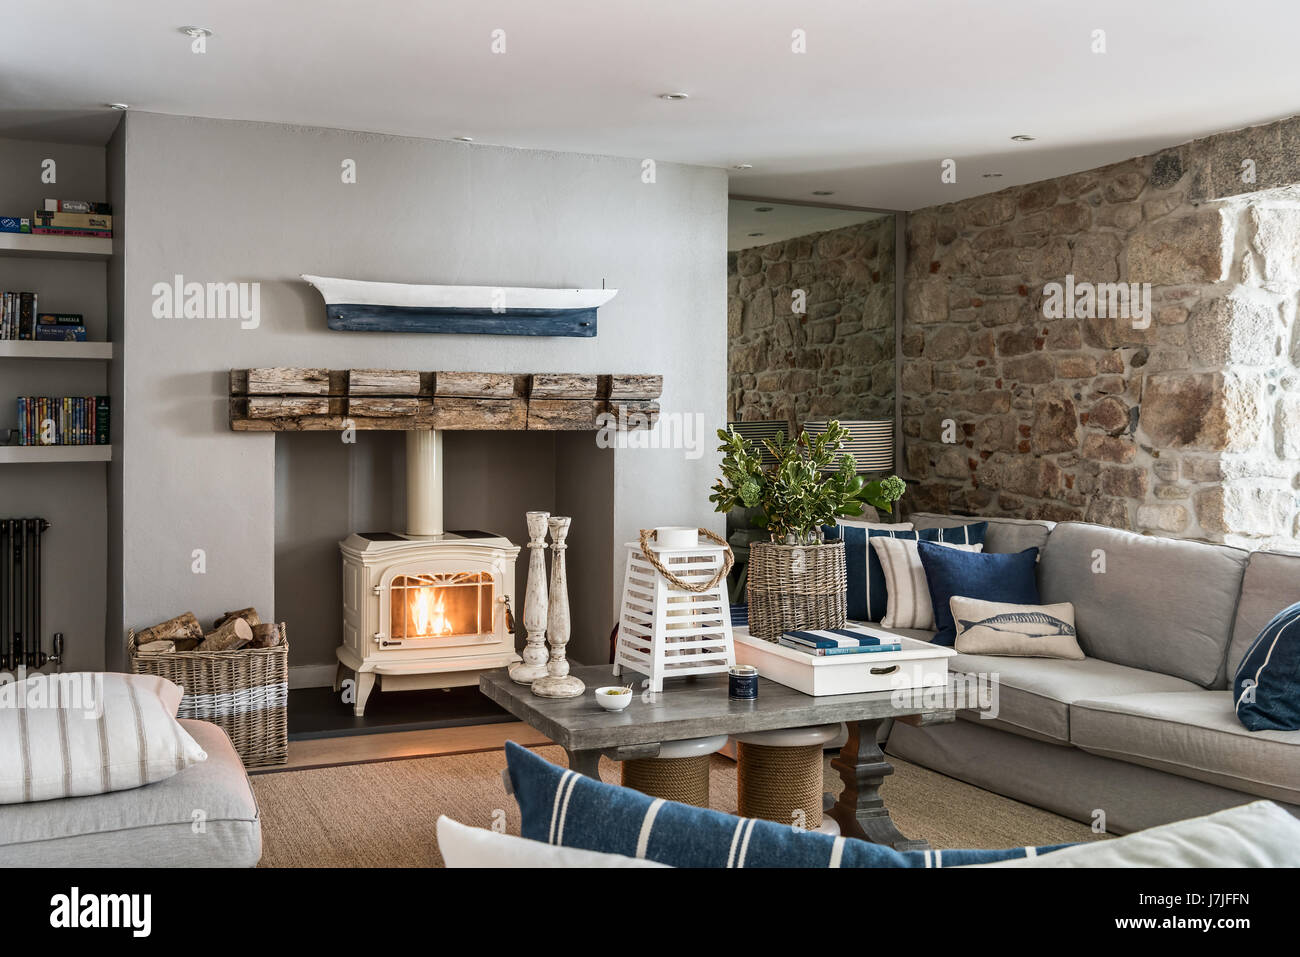 Jotul Wood Stove In Sitting Room With Exposed Stone Wall And Mirrored  Alcove. A Driftwood Boat Hangs Above The Fireplace And The Walls Are  Painted In